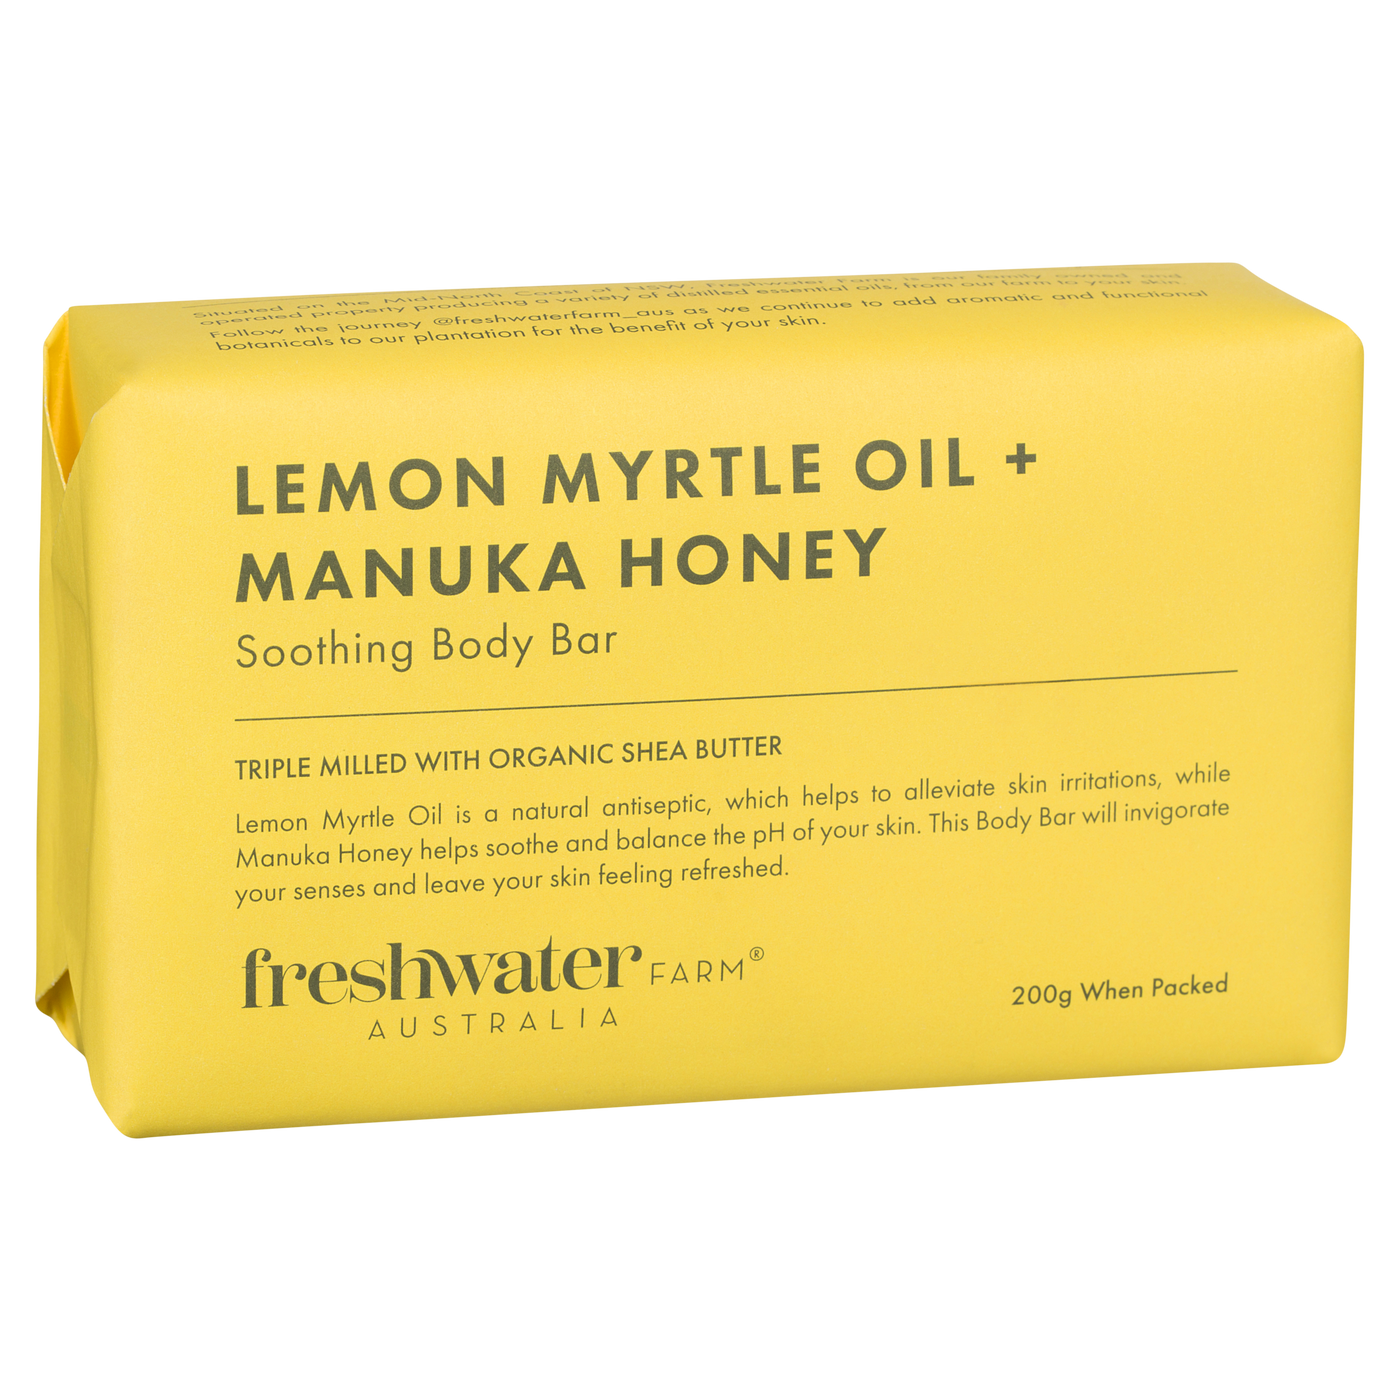 Lemon Myrtle Oil and Manuka Honey Body Bar Soap